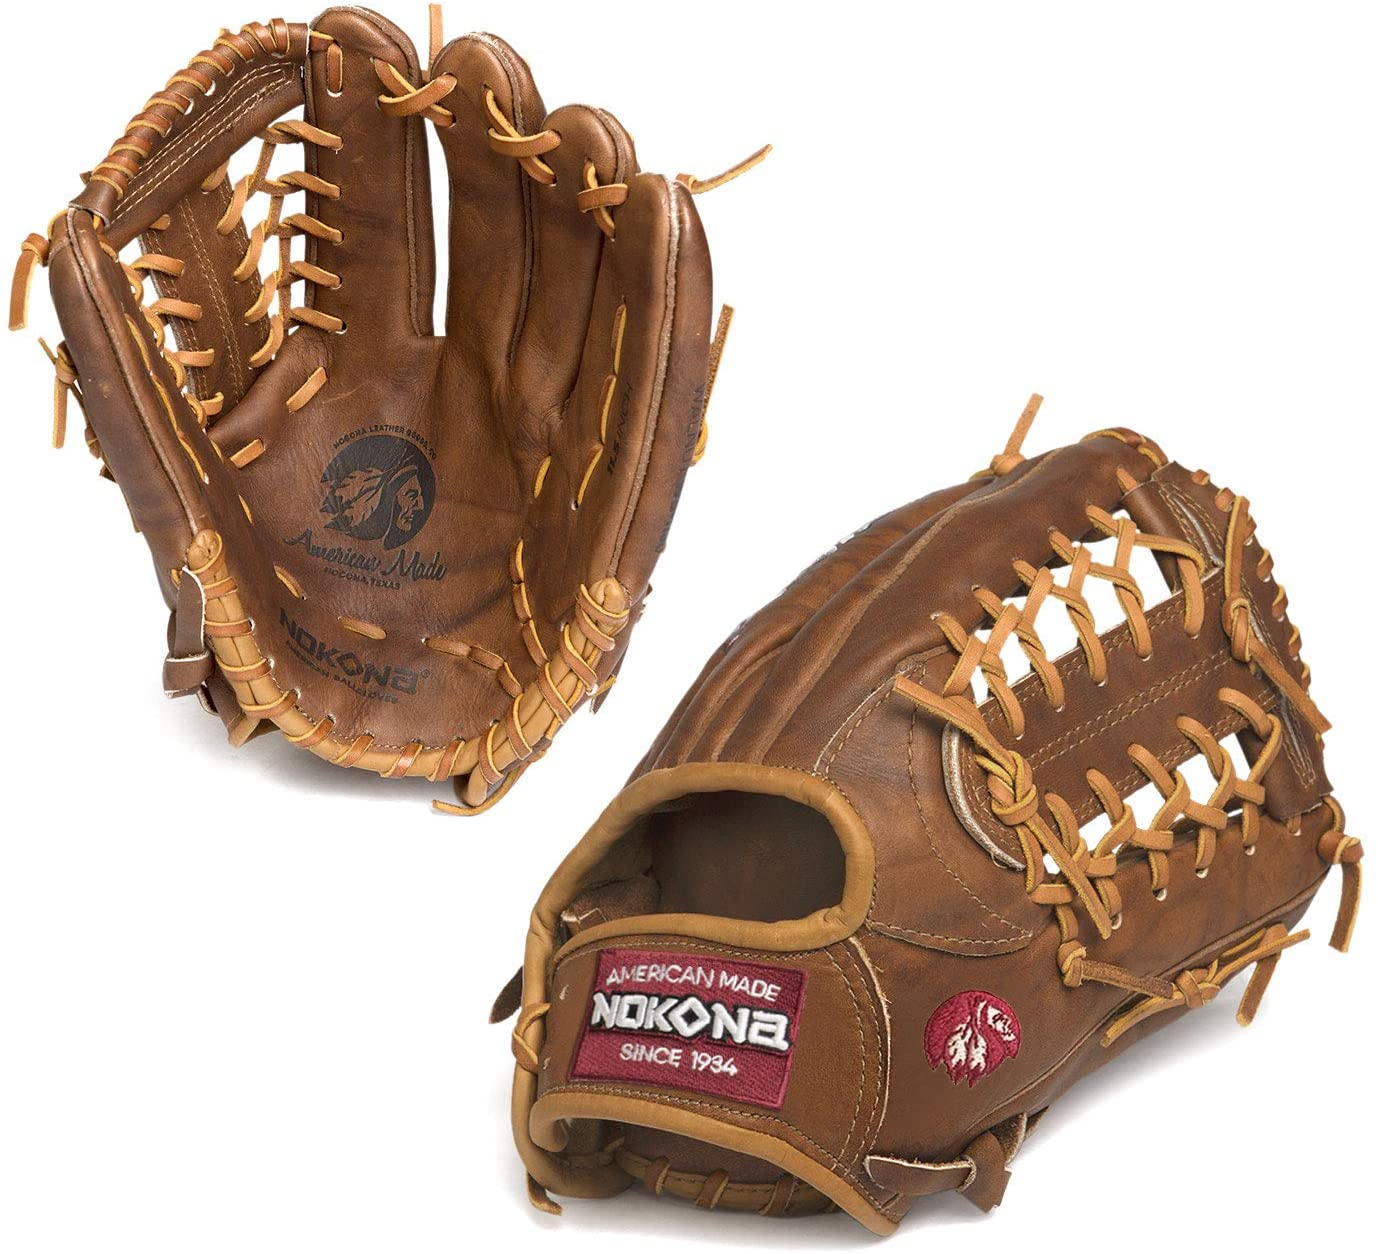 Inspired by Nokona's history of handcrafting ball gloves in America for over 80 years, the proprietary Walnut Crunch leather is a signature of Nokona. This glove provides great stability, durability, and a game-ready feel. This classic series has been updated with a new look that highlights the gloves' modern features, while paying tribute to Nokona's long-standing baseball and softball heritage. - 12.75 Inch Model - Modified Trap Web - Open Back - Walnut Crunch Steerhide Leather - Weight: ~680g - Made in the USA - Manufacturer's Warranty